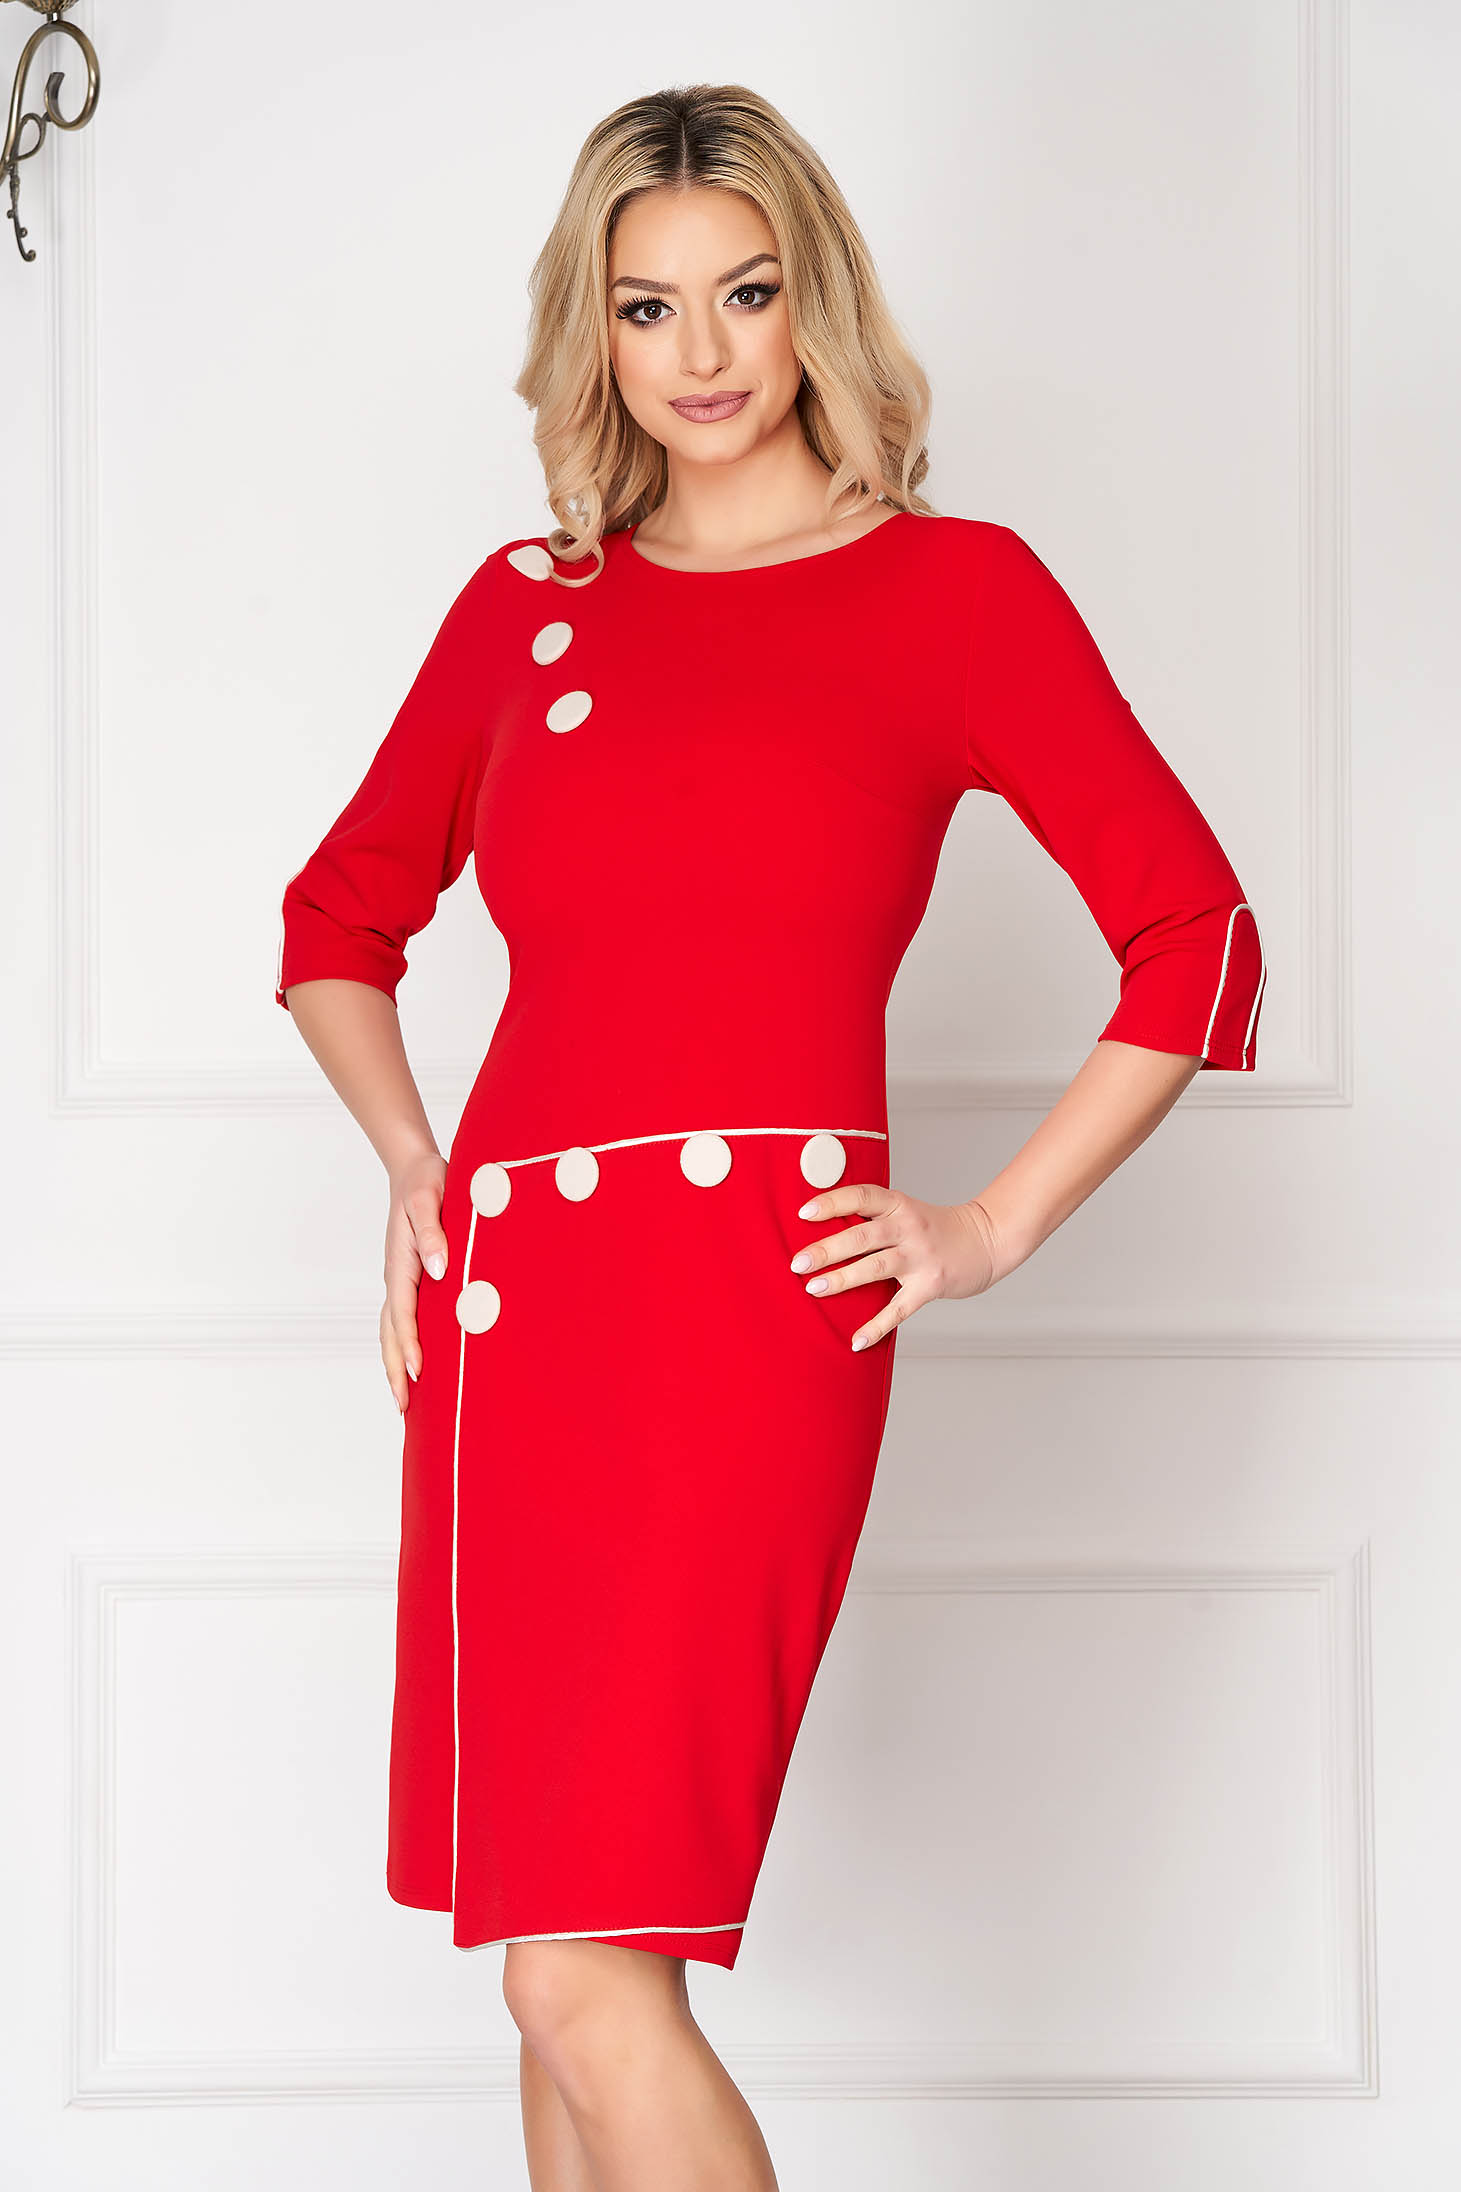 Red daily dress straight short cut with button accessories